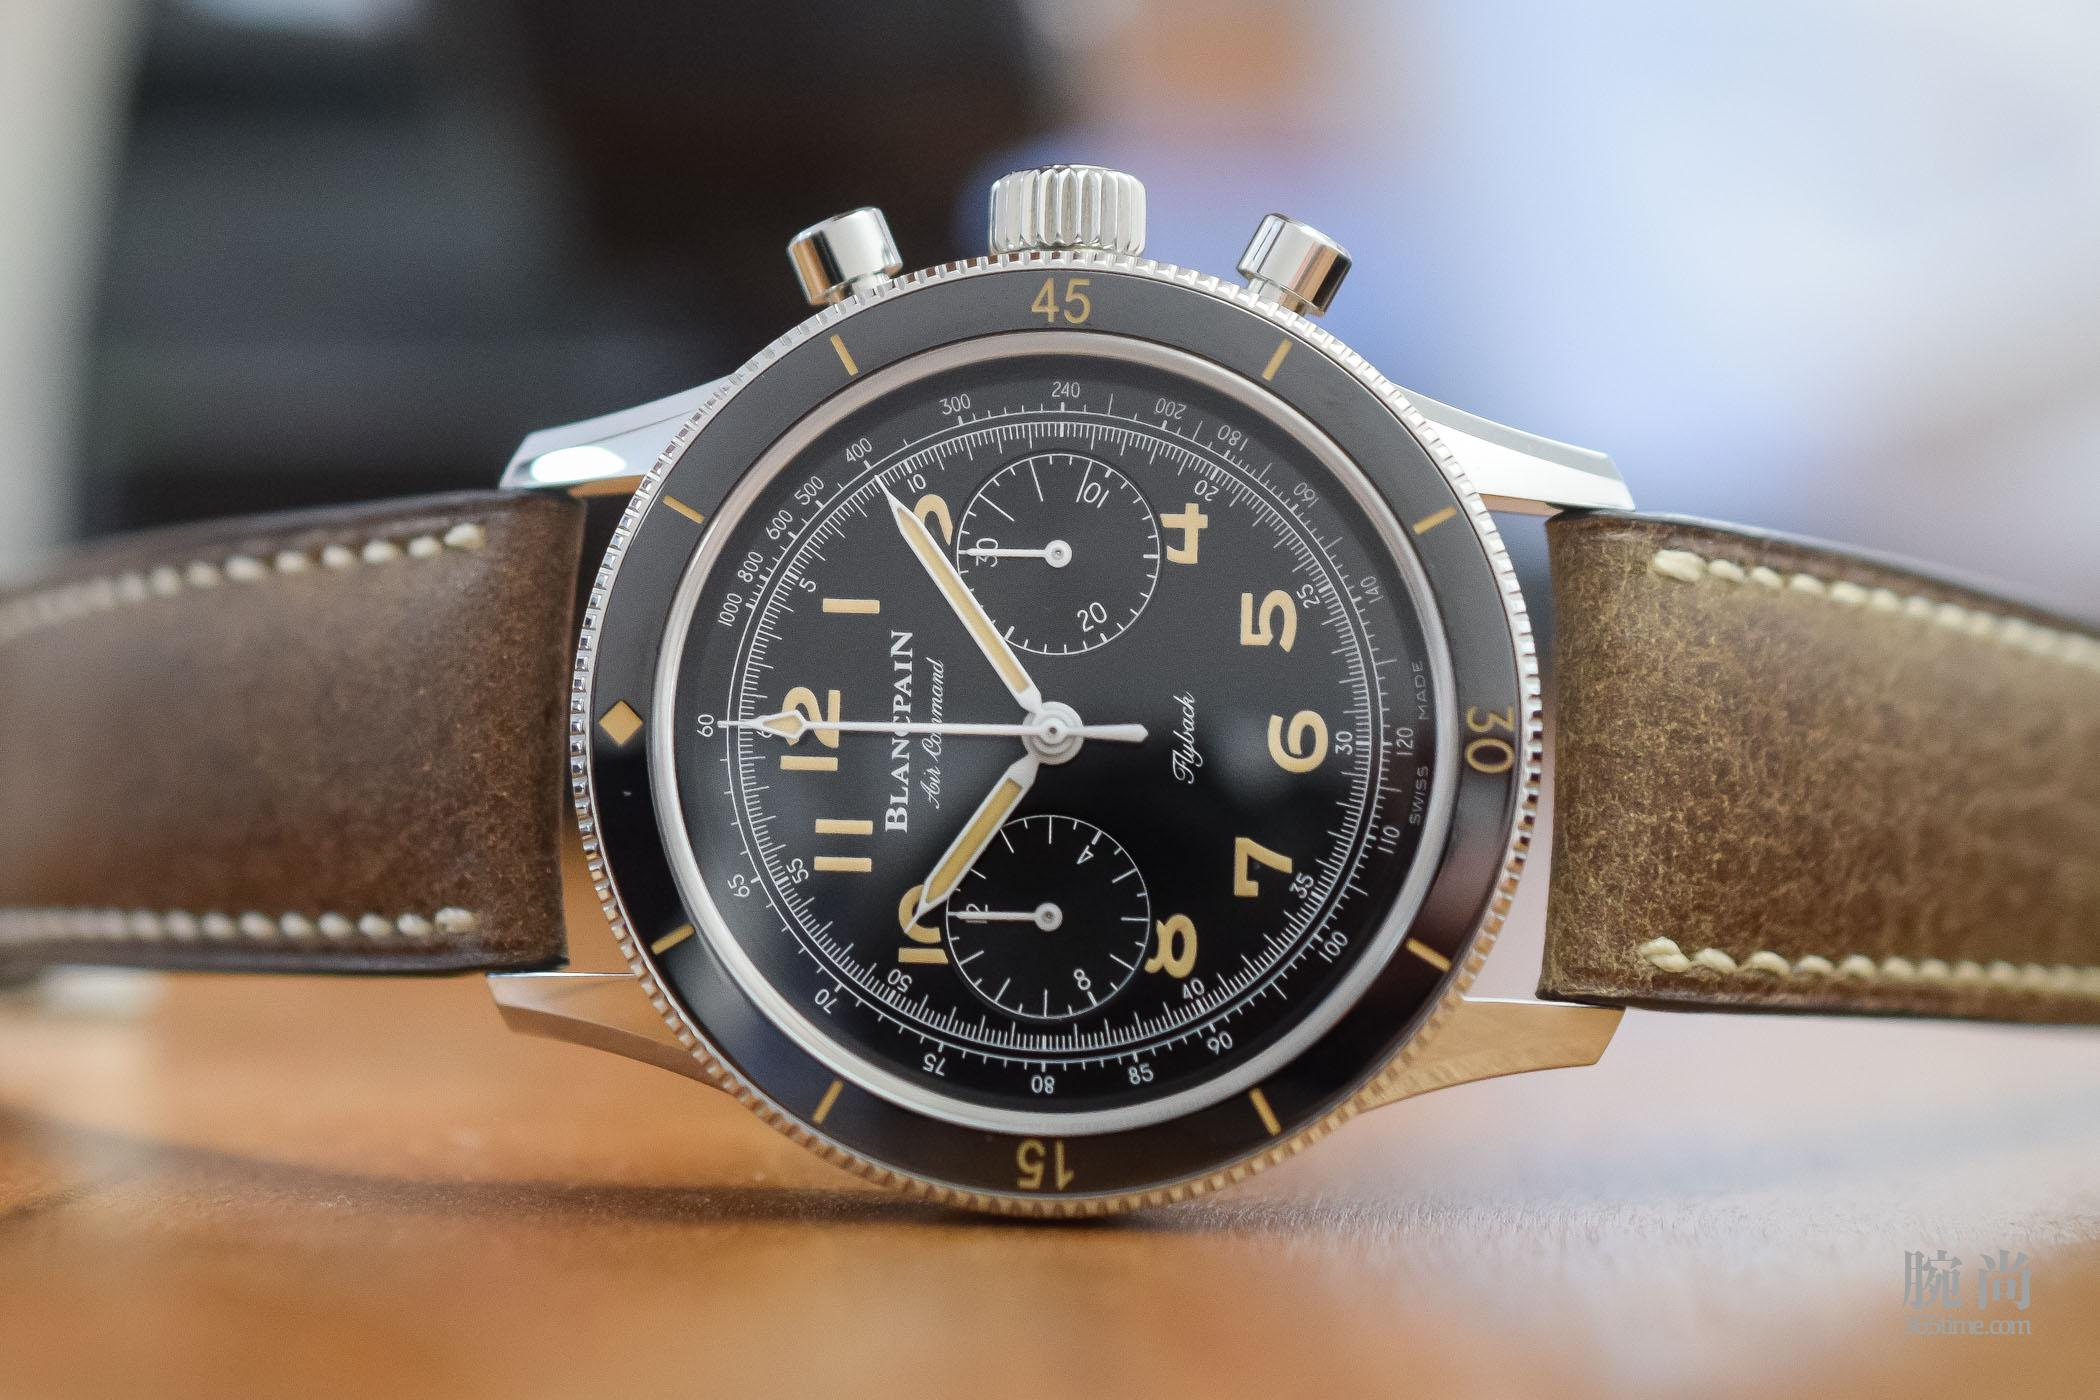 Blancpain-Air-Command-Chronograph-Re-Edition-2019-reference-AC01-1130-63A-6.jpg